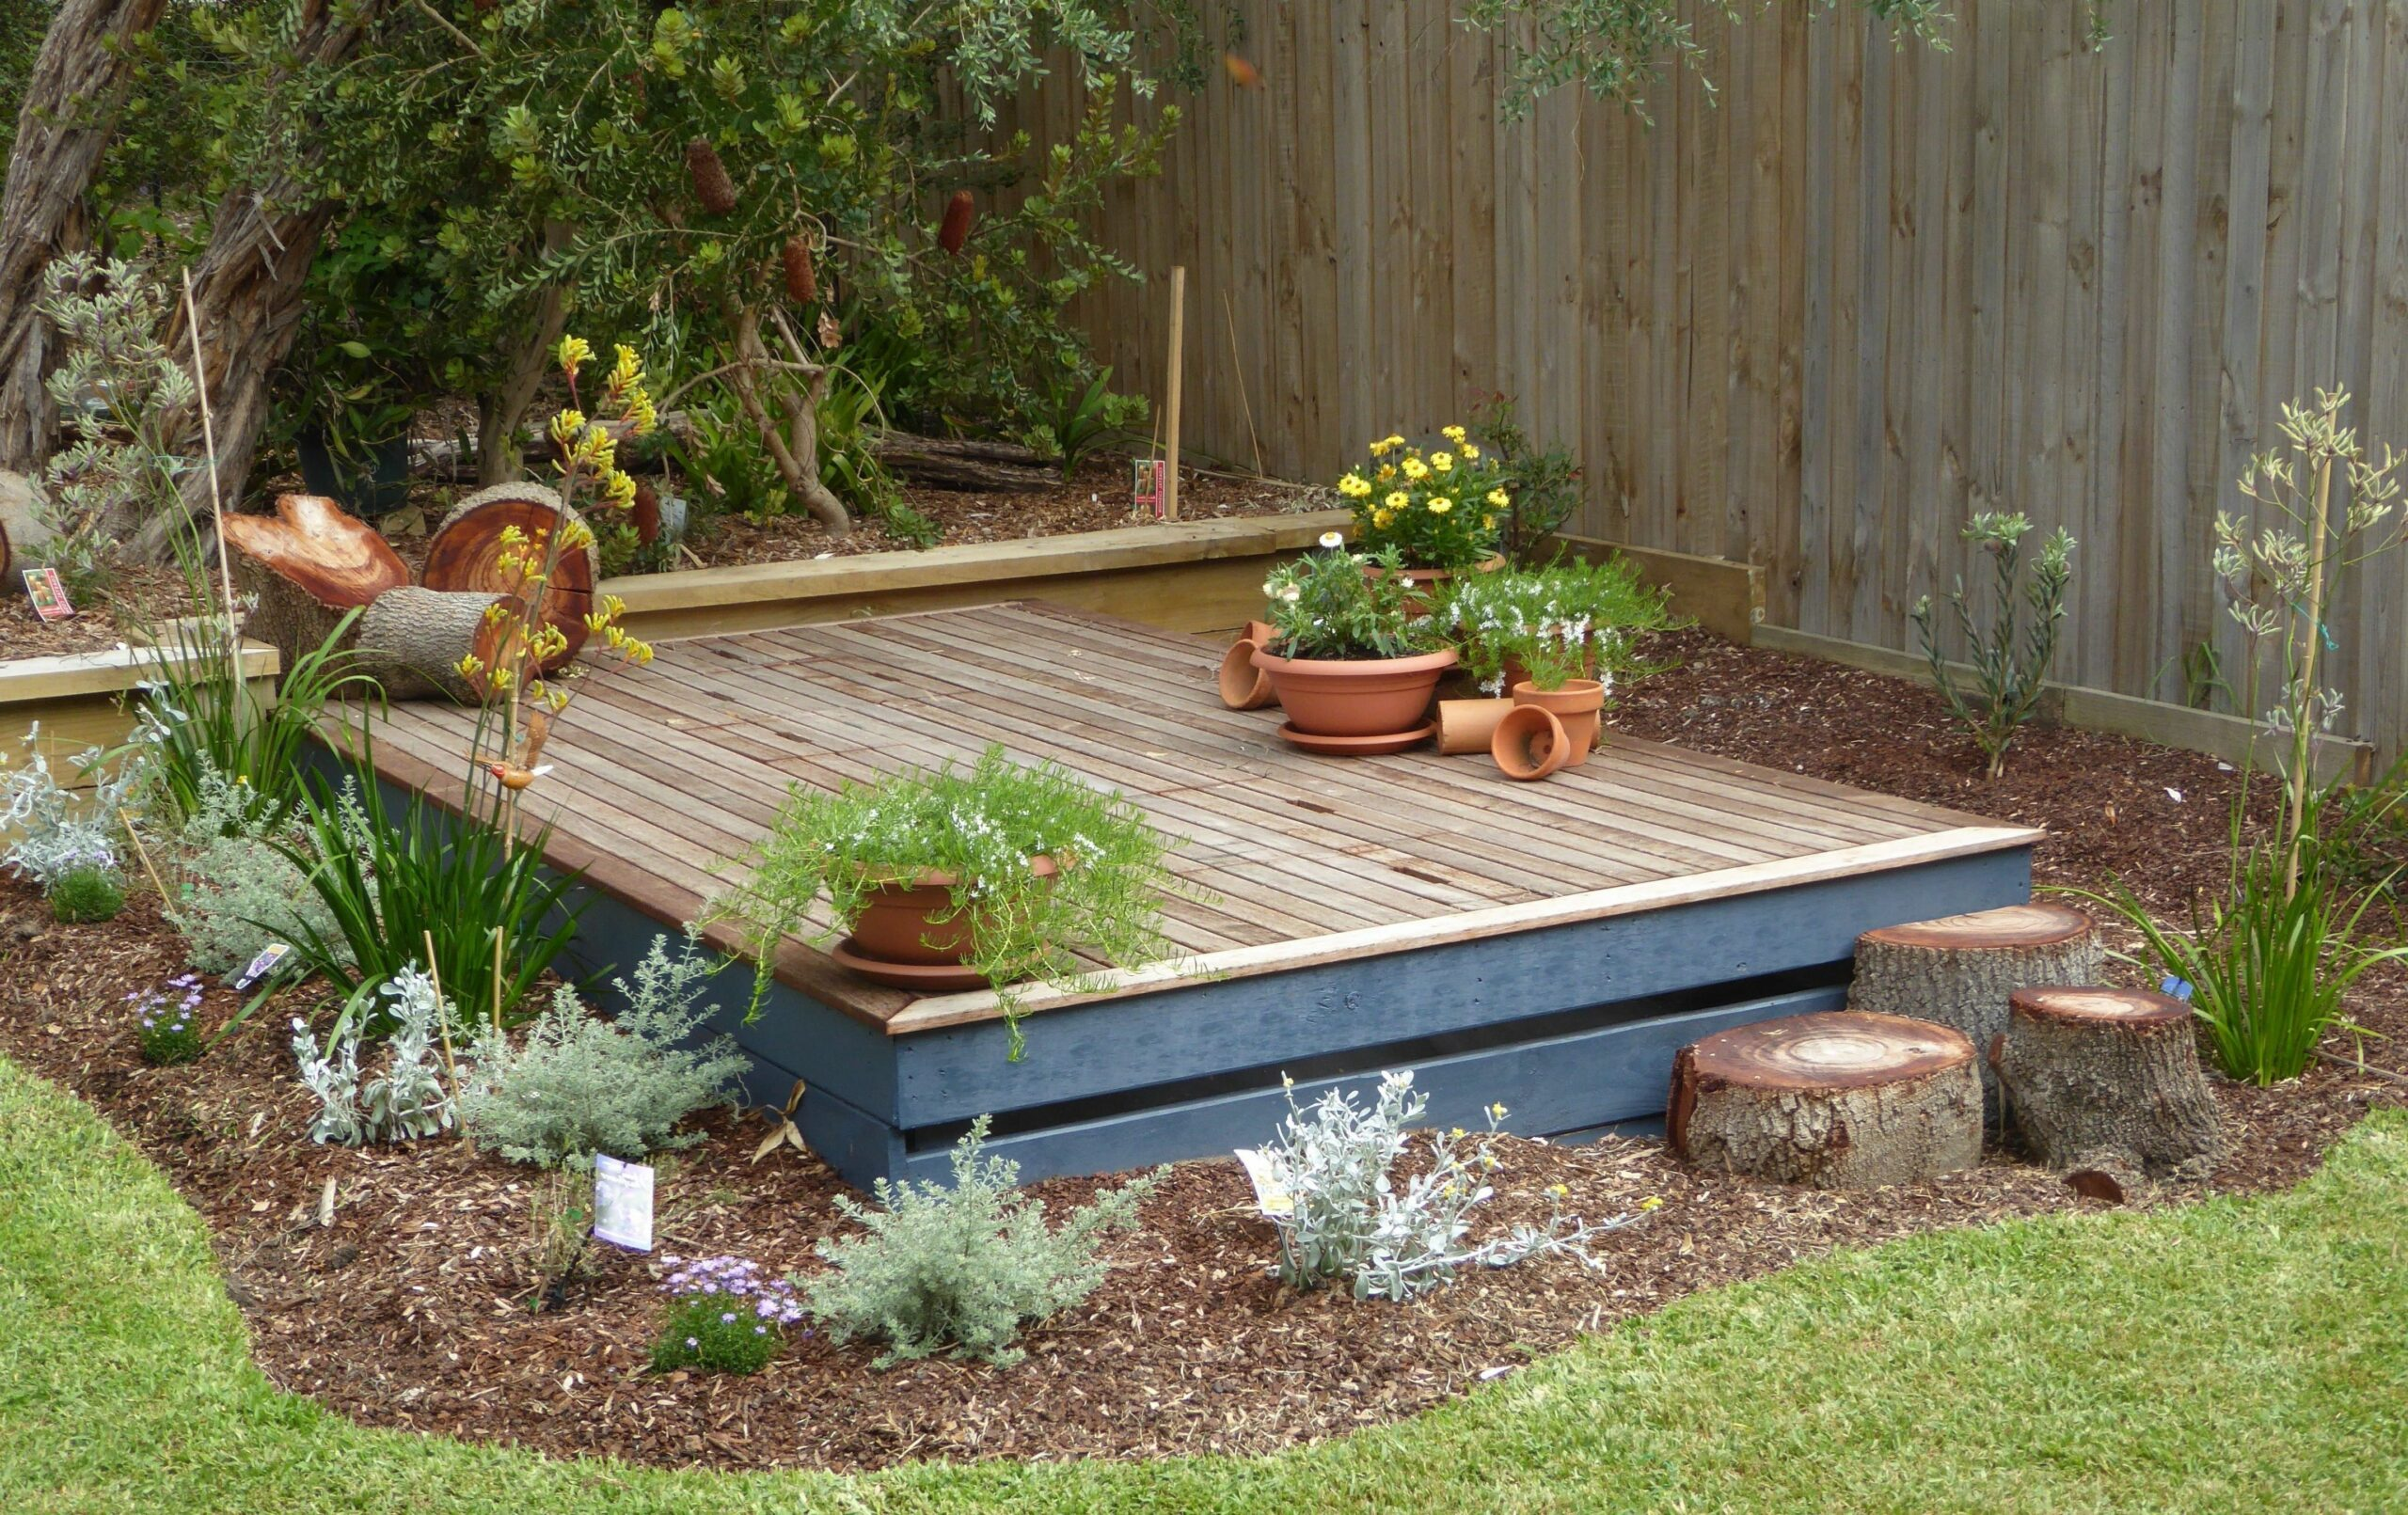 Best Decorative Septic Tank Cover Ideas (With images) | Septic ..